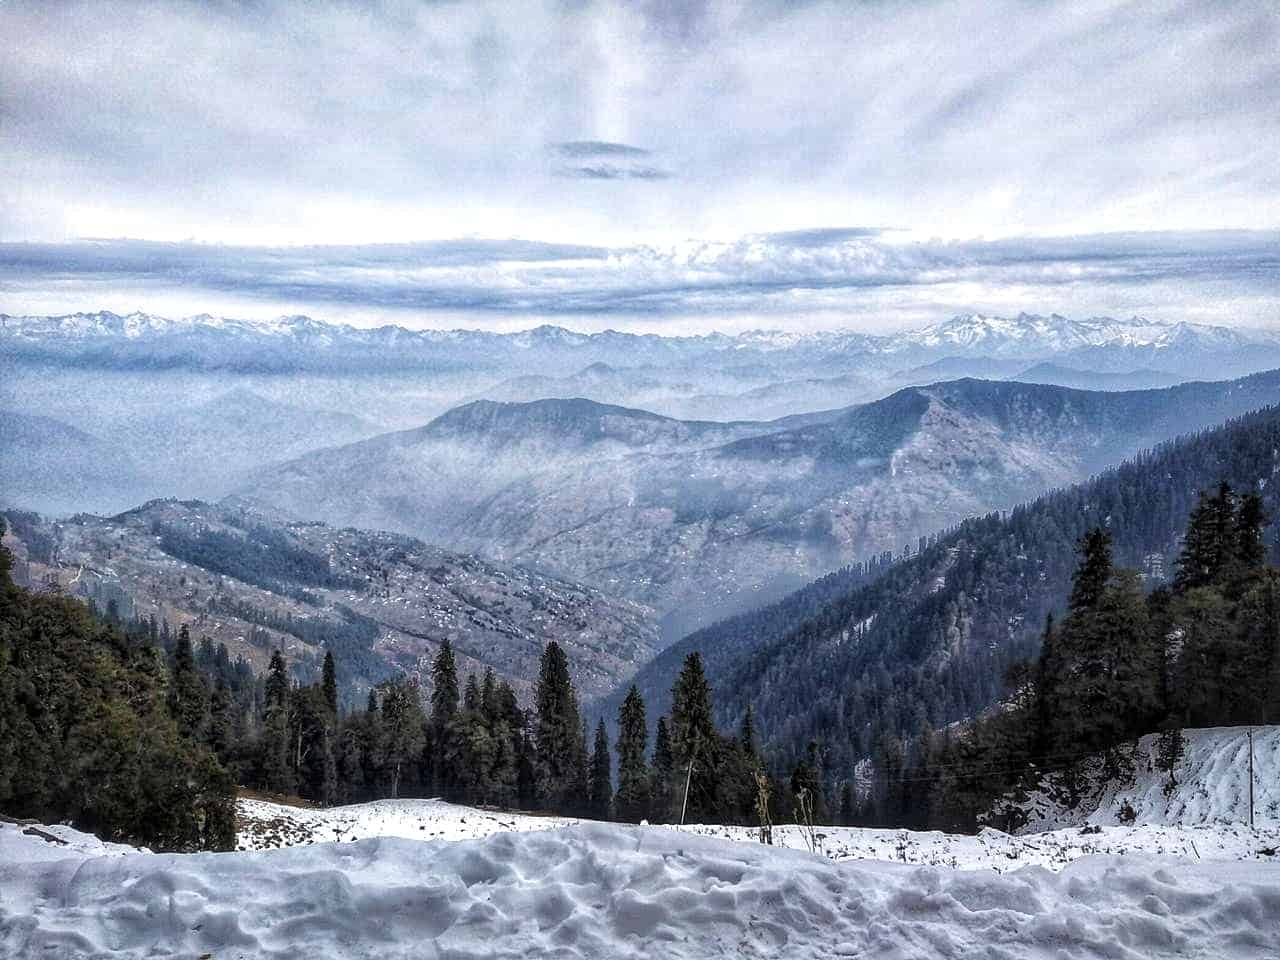 Hatu-Peak-is-the-highest-peak-in-the-whole-of-Shimla-perched-at-a-dizzying-height-of-12000-feet-it-is-a-must-visit-for-everybody